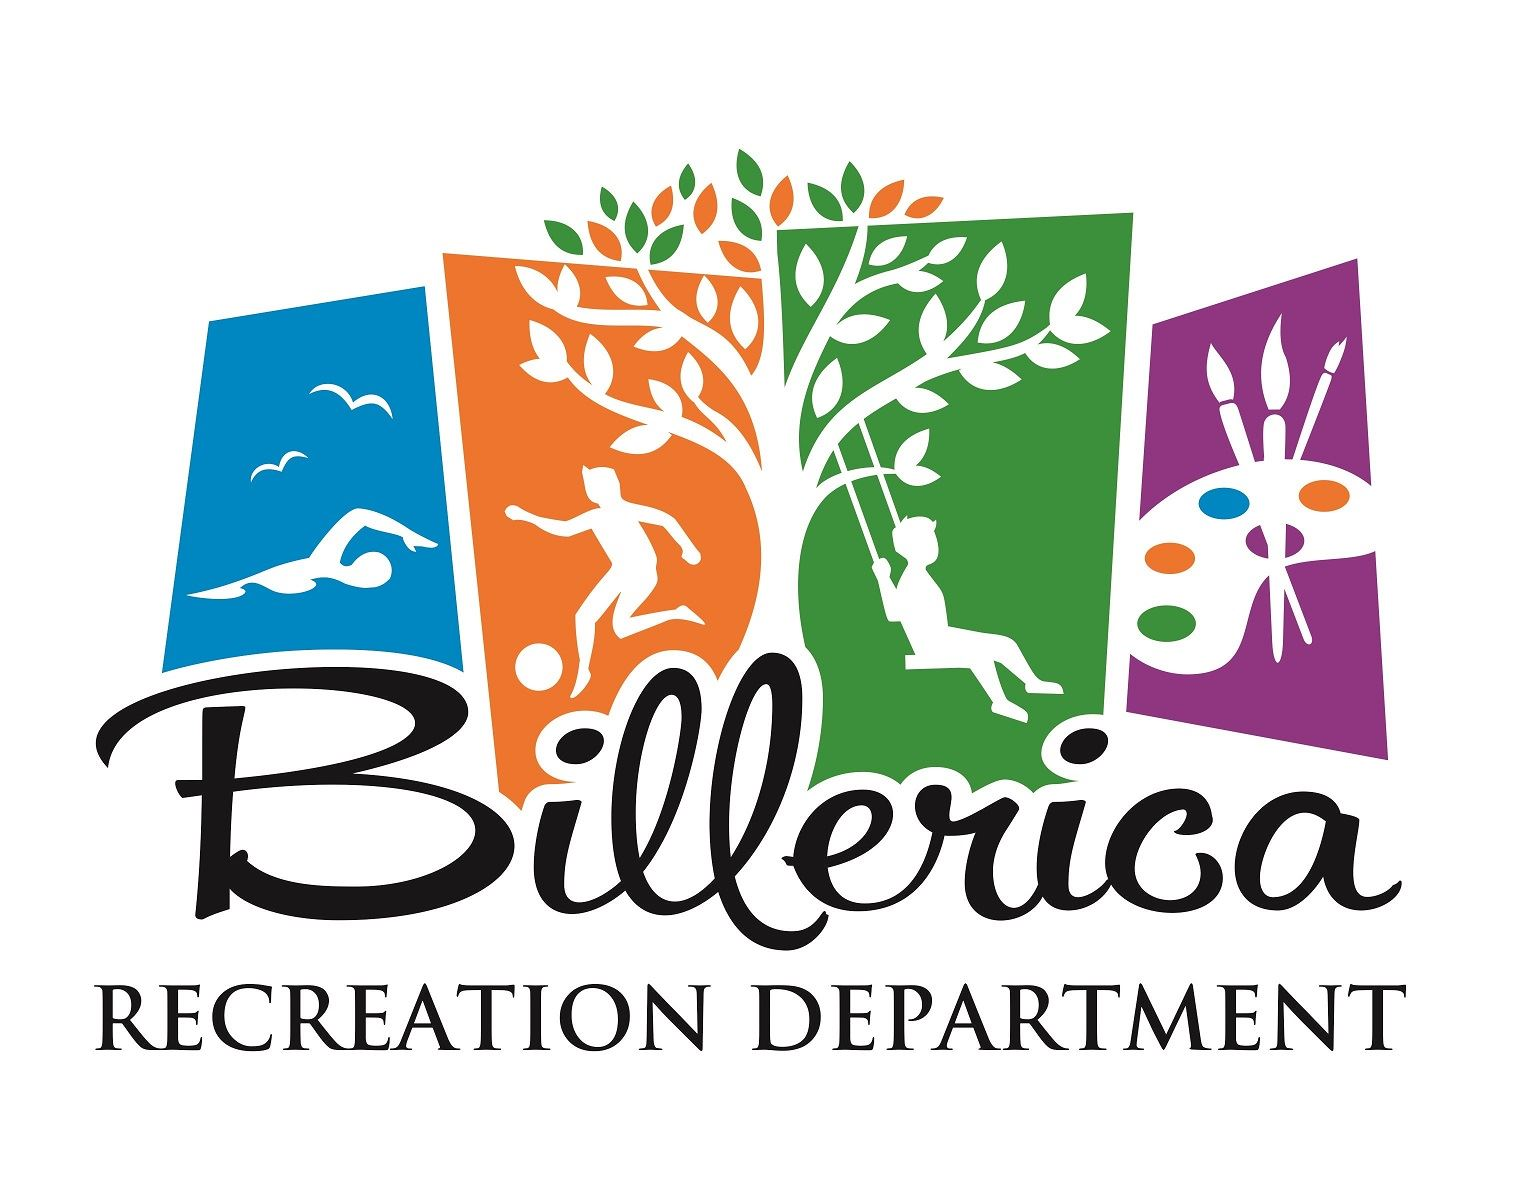 Billerica Recreation Department LOGO